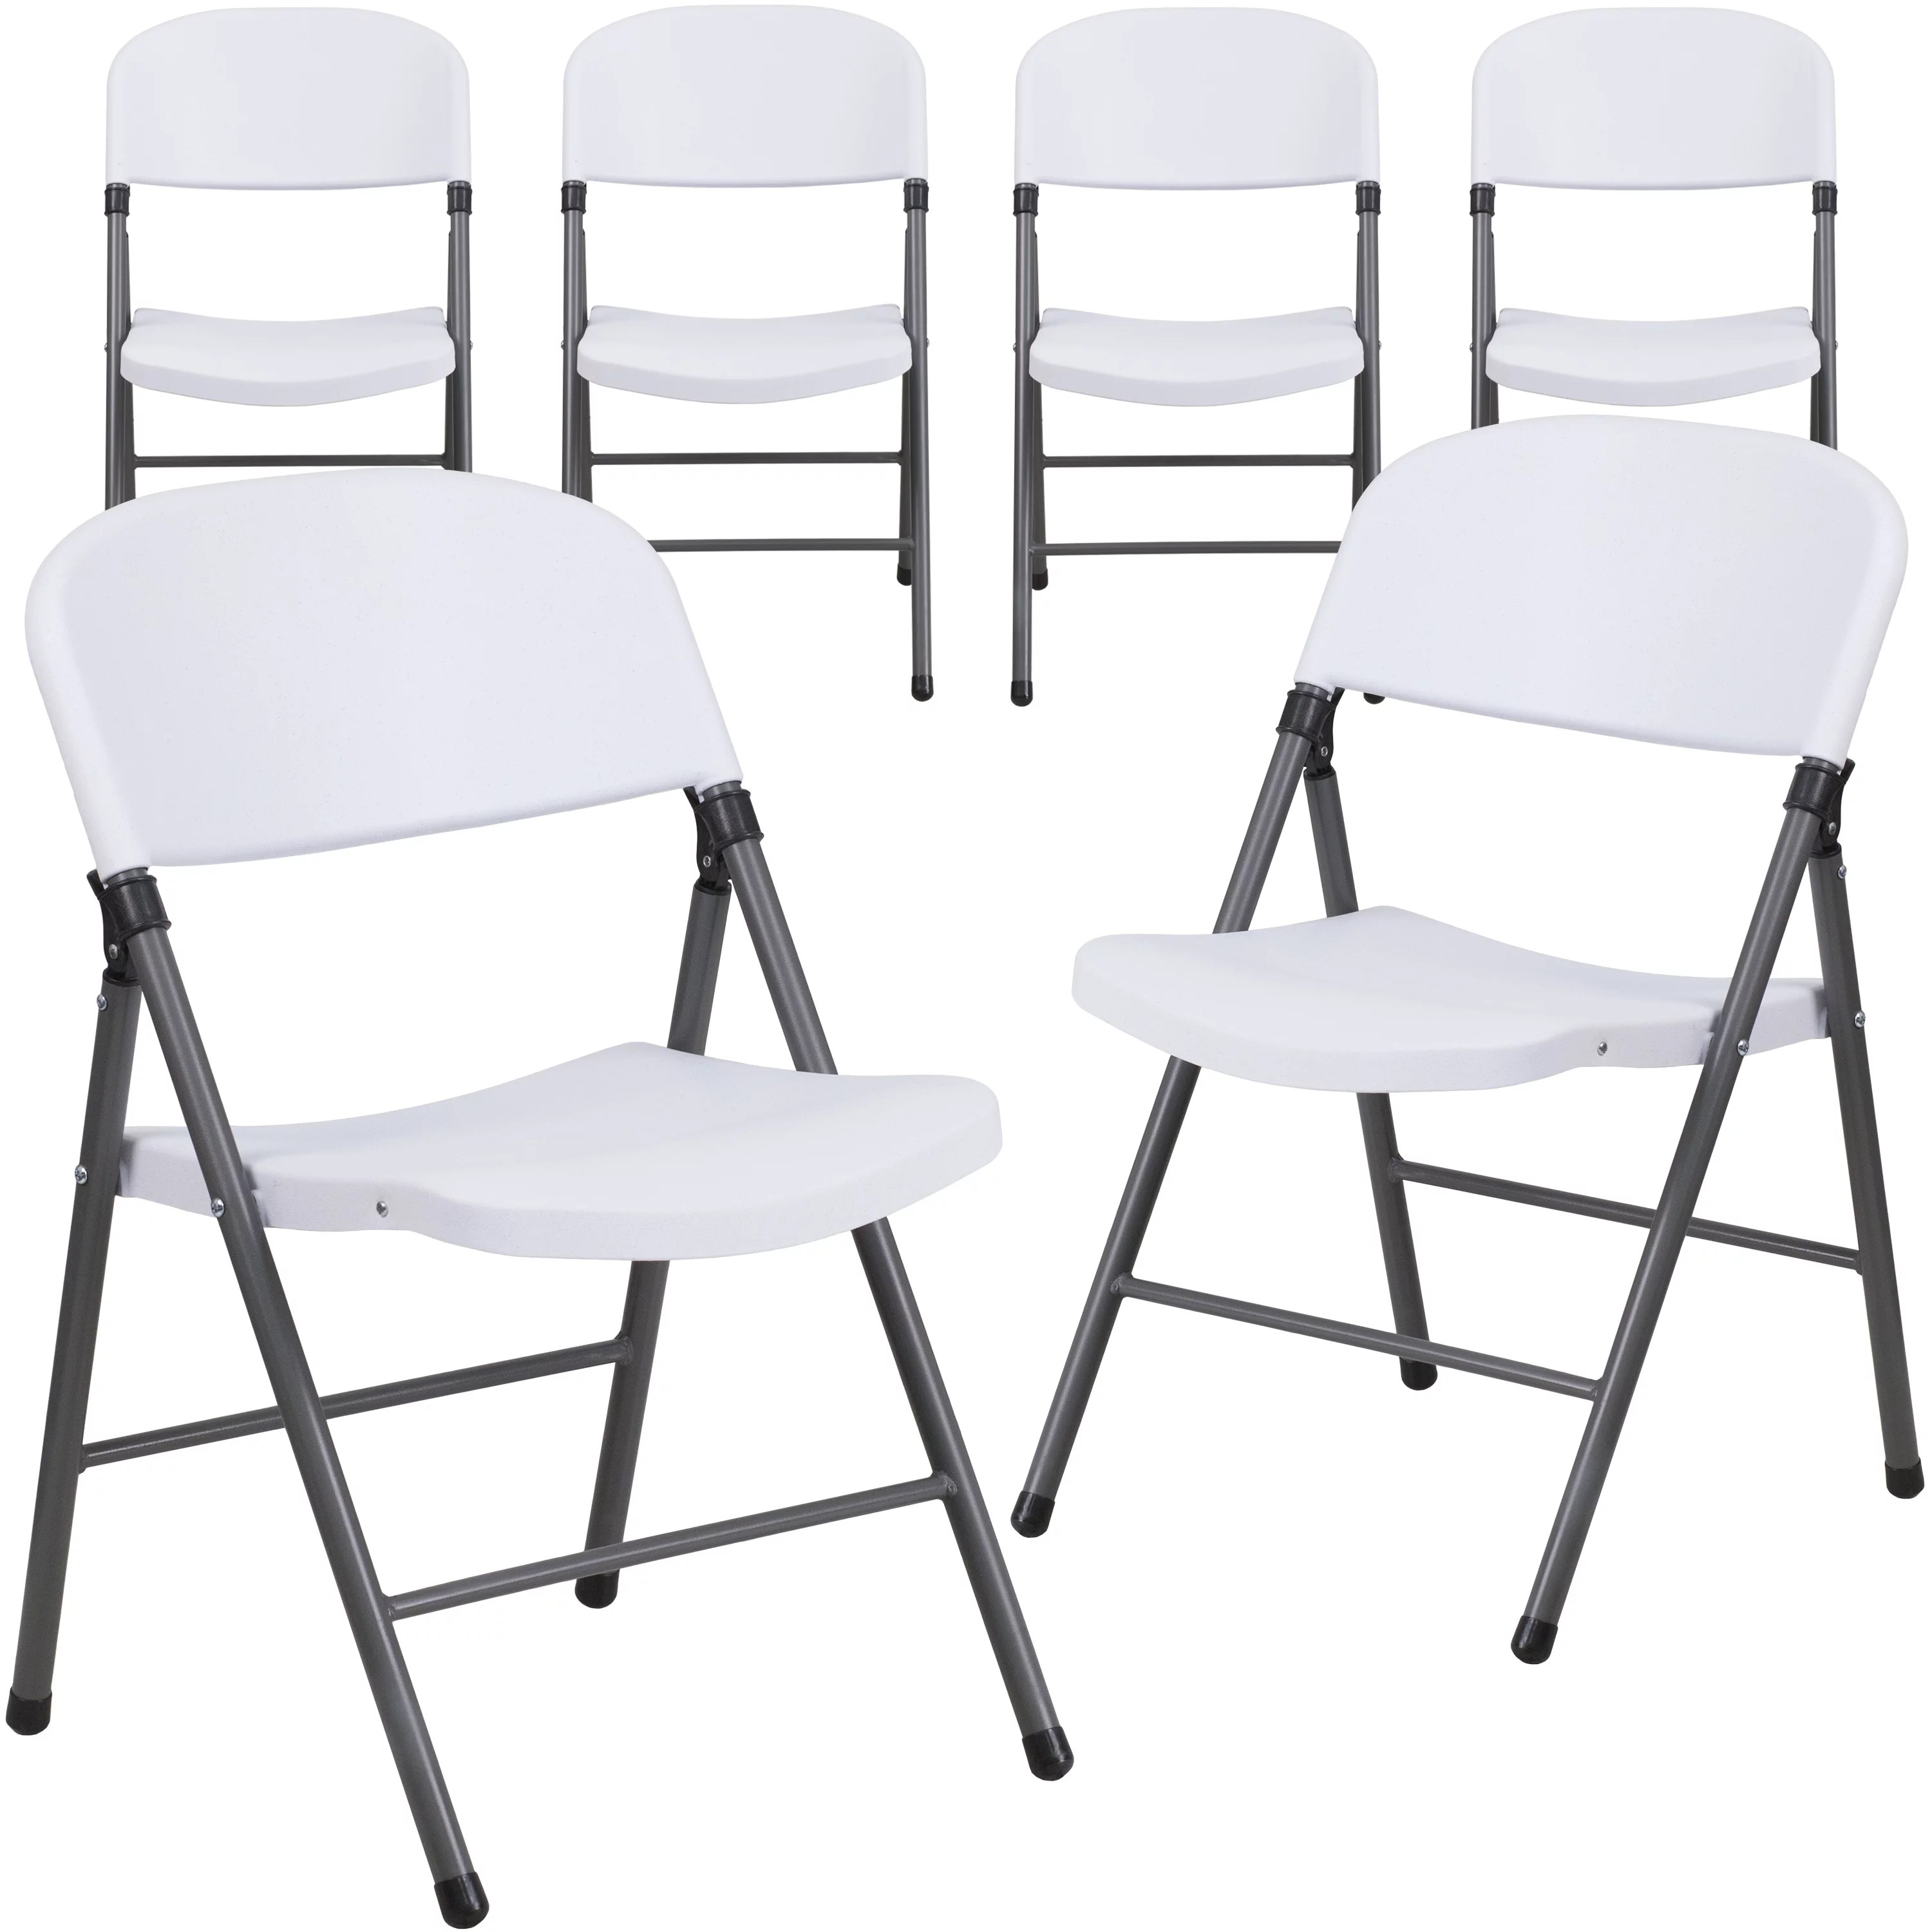 walmart white plastic chairs alera elusion chair manual flash furniture 6 pack hercules series 330 lb capacity folding with charcoal frame com